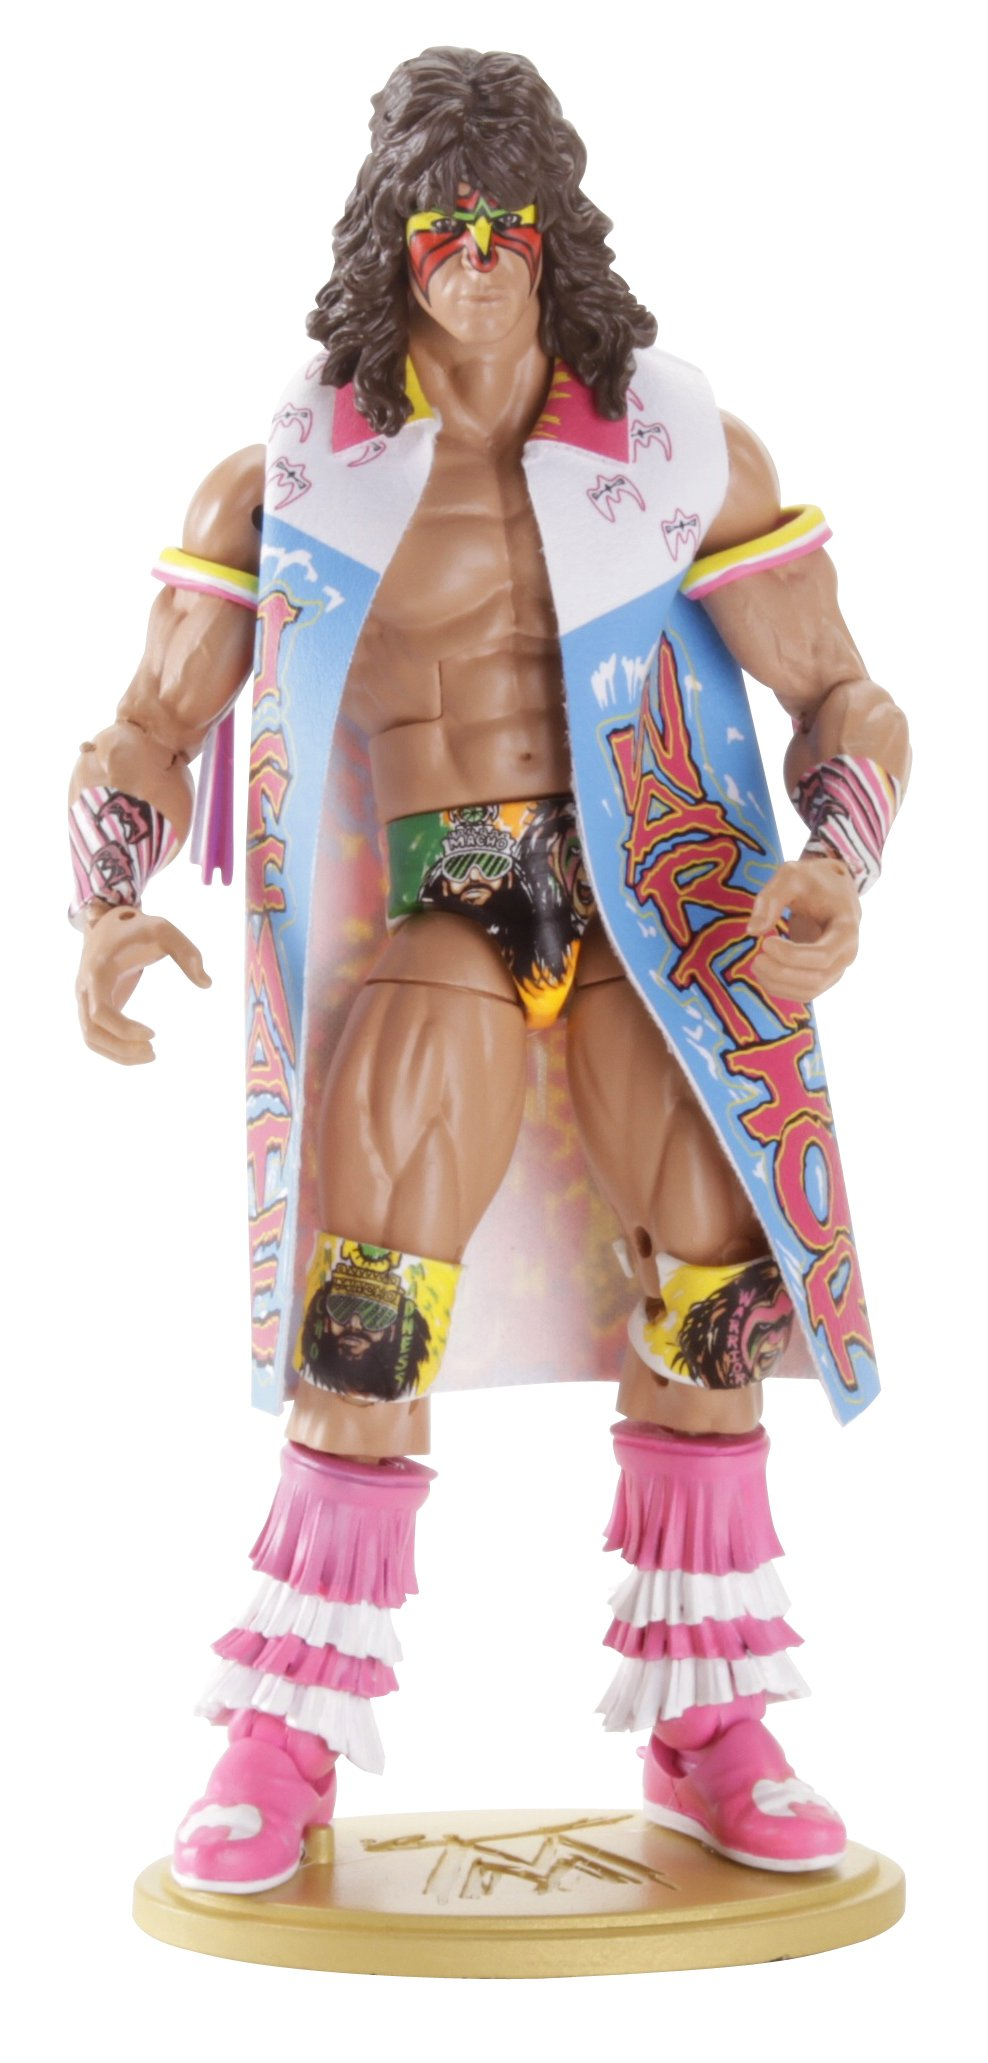 WWE Defining Moments Ultimate Warrior - Wrestlemania 7 Collector Figure Series #2 by Mattel